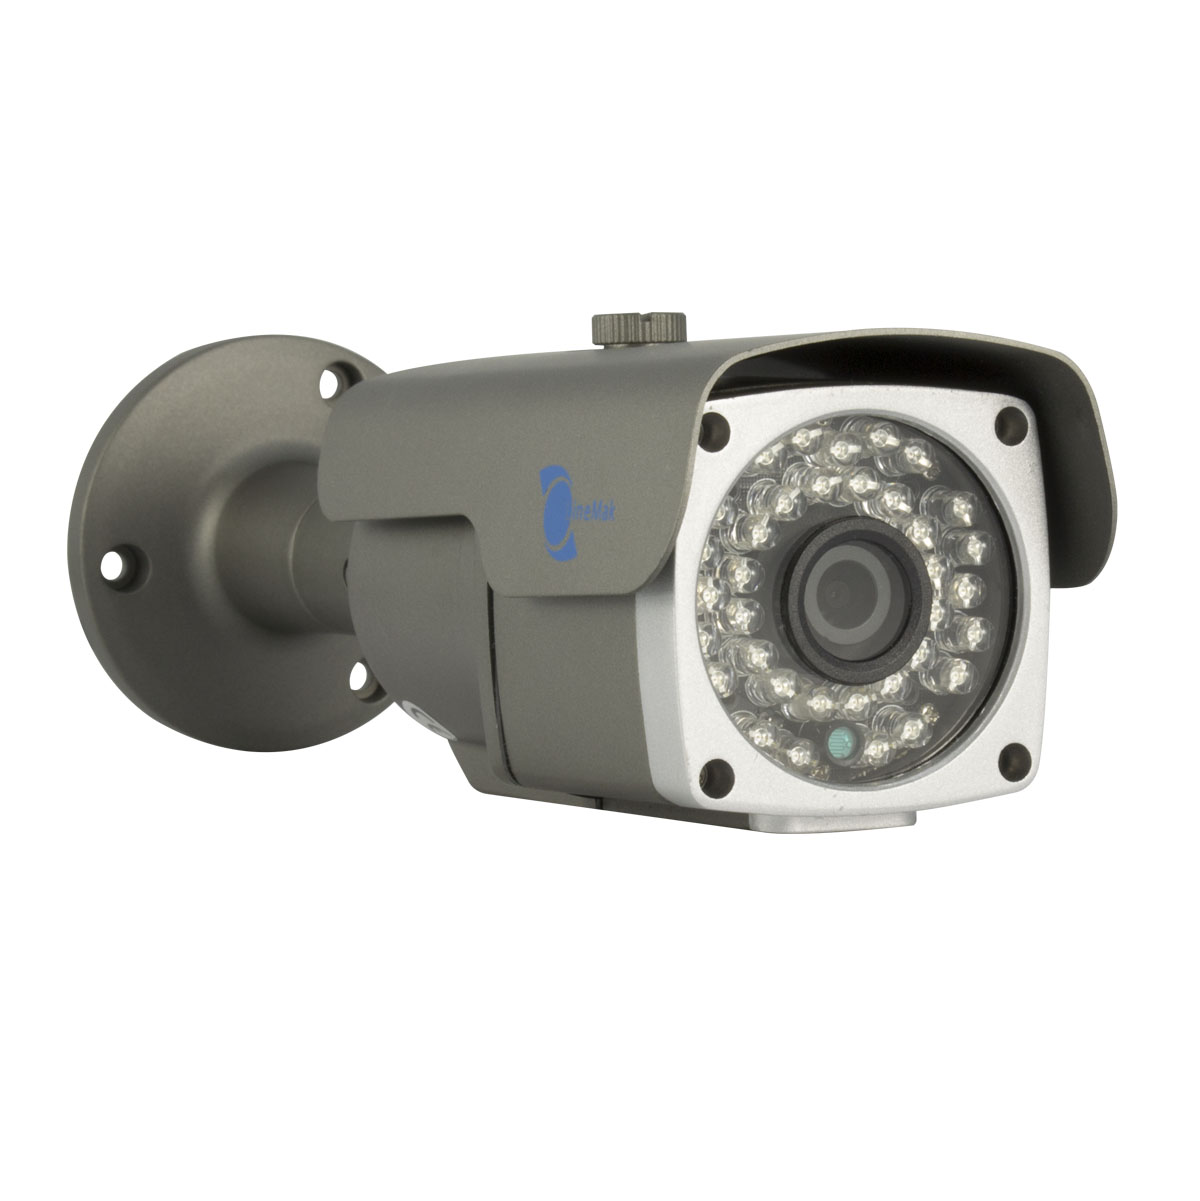 IP Bullet camera 1/3 CMOS Sensor 2.0Mp 3.6mm lens 36 LEDs 98ft IR IP66